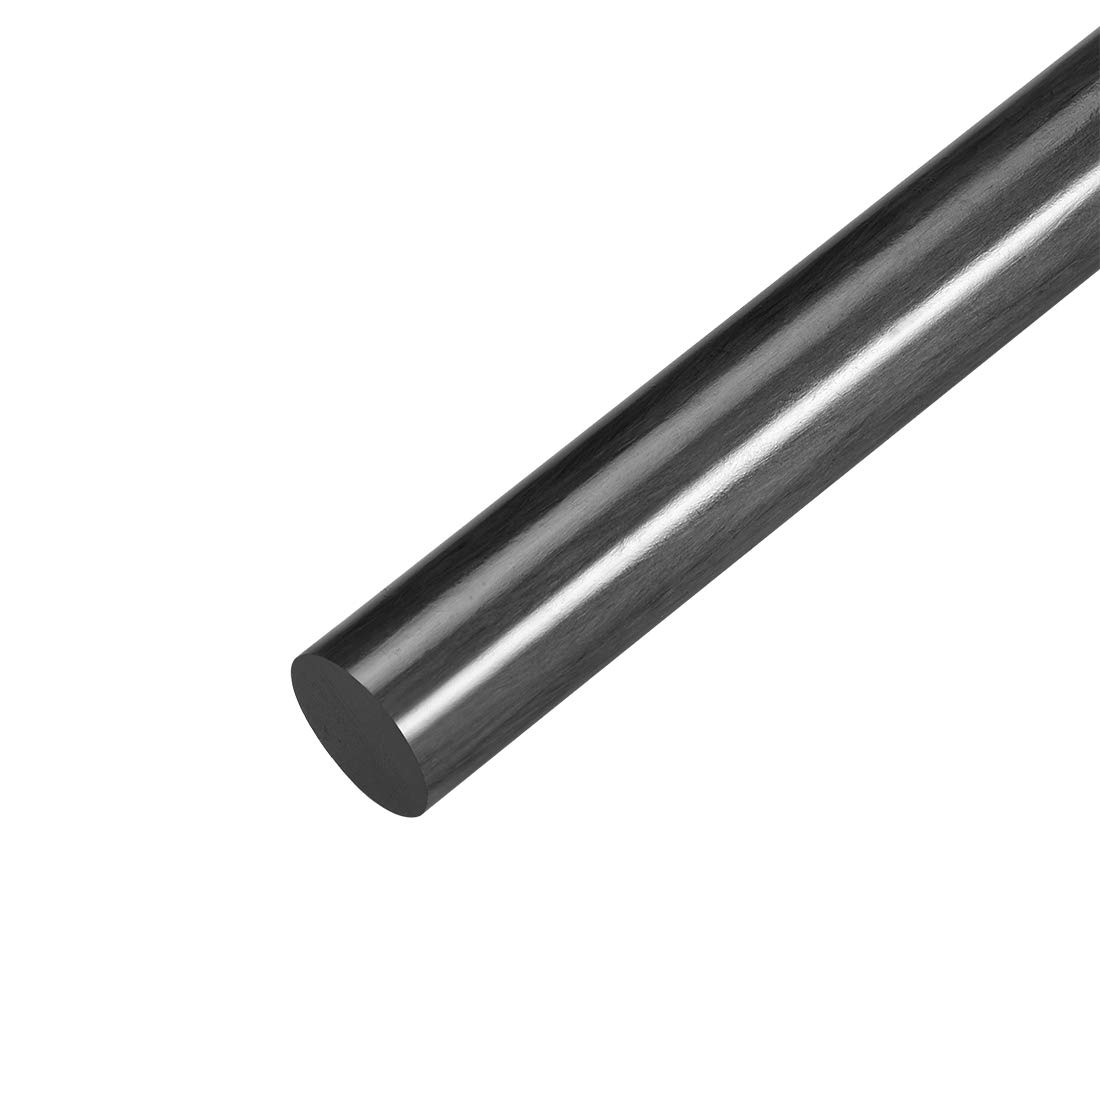 uxcell 8mm Carbon Fiber Bar For RC Airplane Matte Pole US 200mm 7.8 inch